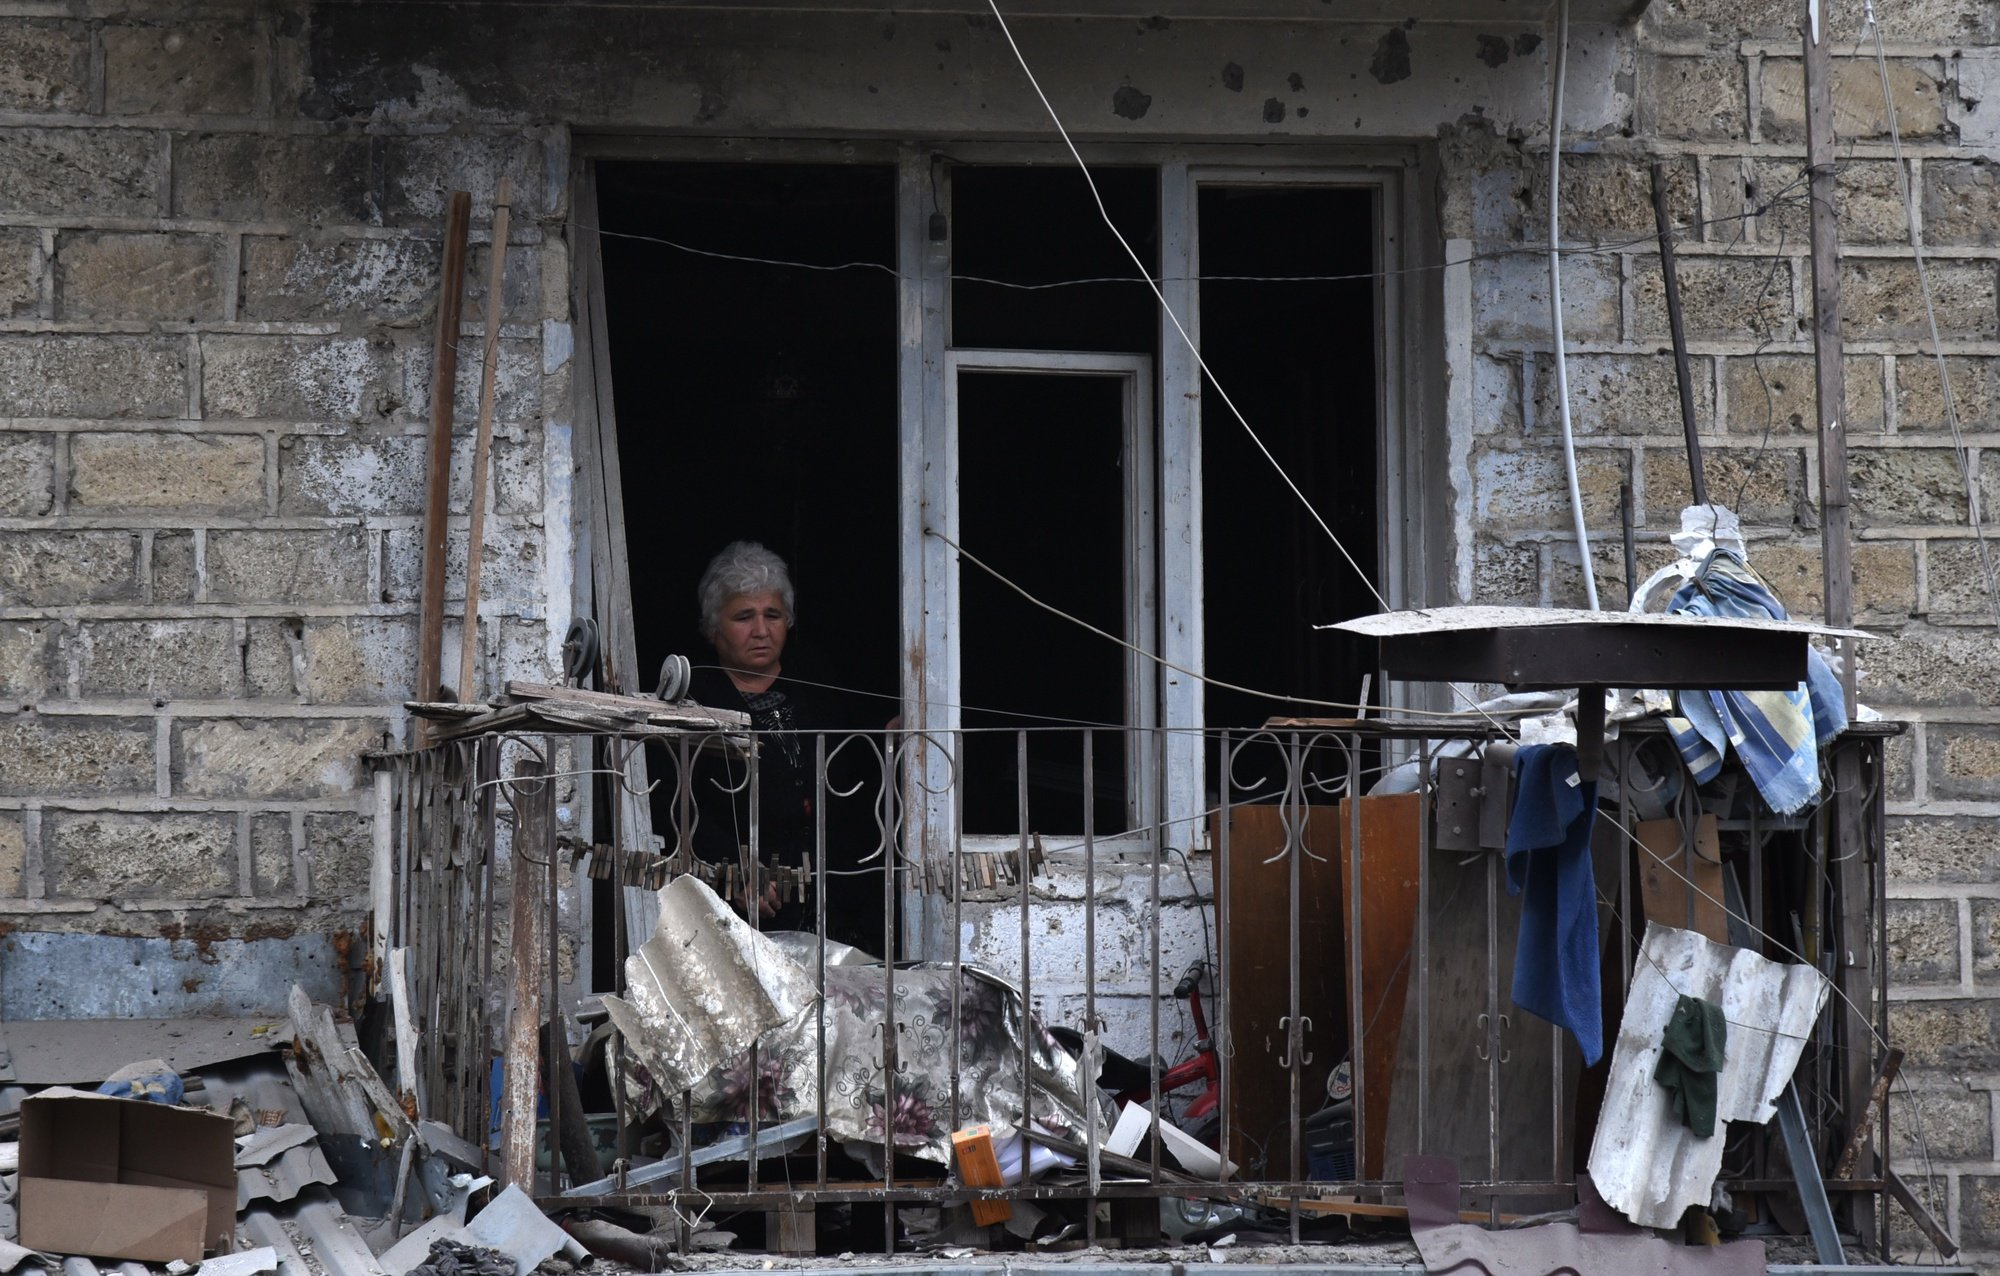 epaselect epa08721179 A woman looks out the window of apartment house after shelling by Azerbaijani artillery, Stepanakert, Nagorno-Karabakh, 04 October 2020. AArmed clashes erupted on 27 September 2020 in the simmering territorial conflict between Azerbaijan and Armenia over the Nagorno-Karabakh territory along the contact line of the self-proclaimed Nagorno-Karabakh Republic (also known as Artsakh).  EPA/DAVID GHAHRAMANYAN / NKR INFOCENTER / PAN PHOTO